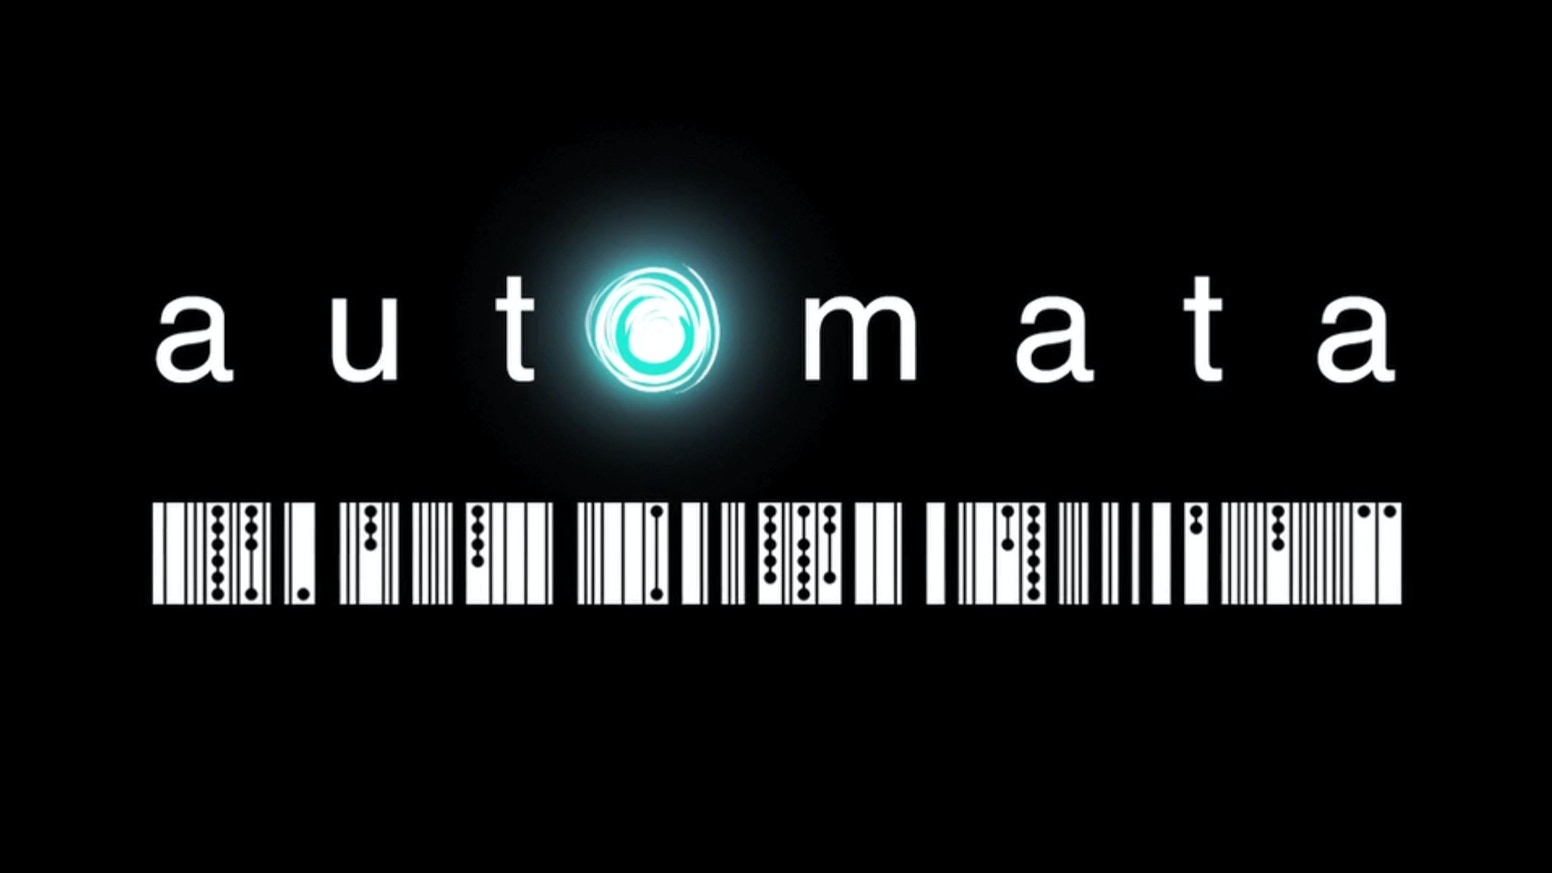 With your help, Automata can finally be made into a live action web series.